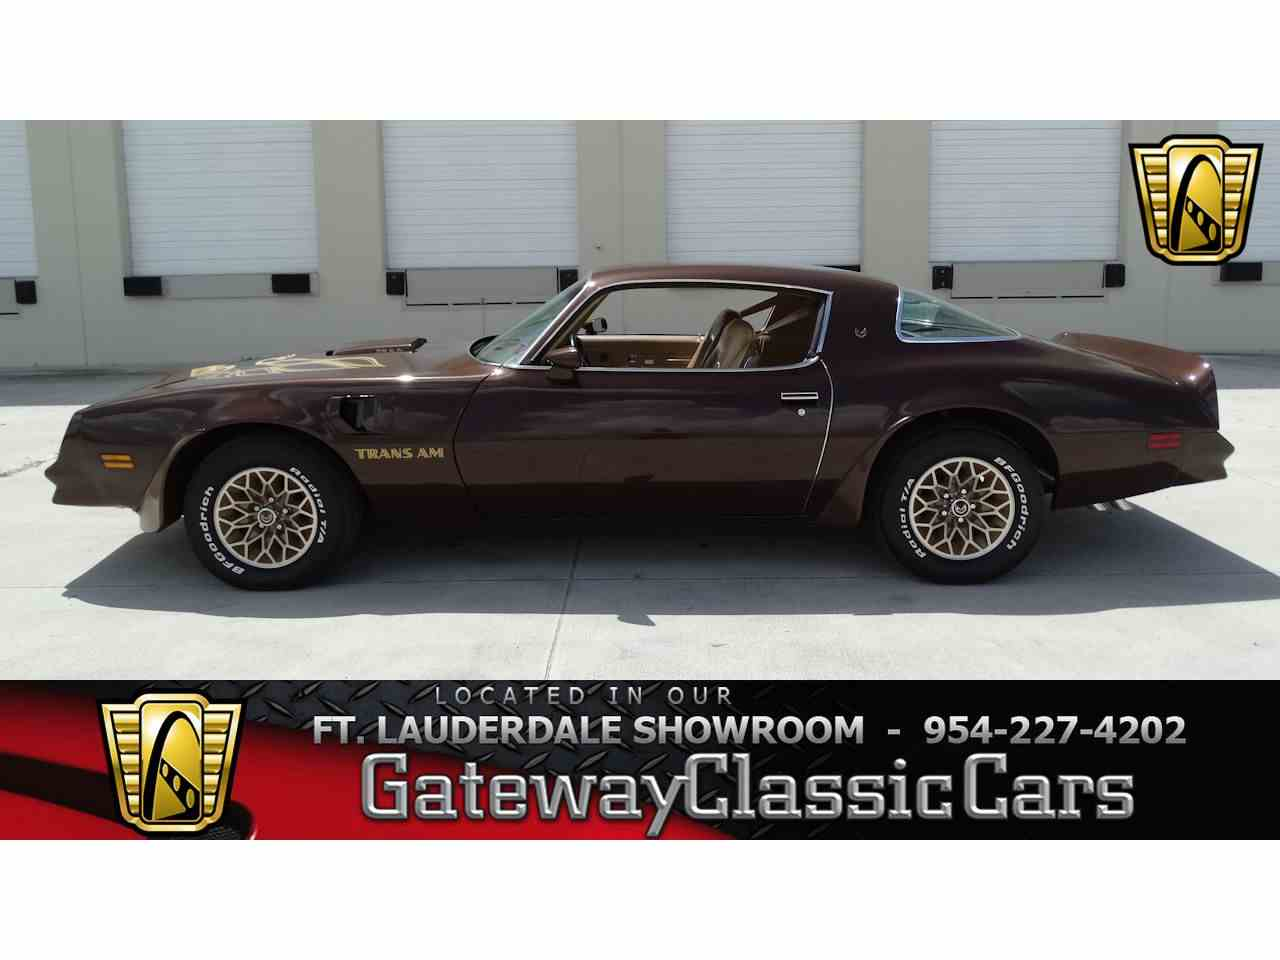 Large Picture of 1977 Firebird Trans Am - $36,995.00 Offered by Gateway Classic Cars - Fort Lauderdale - LRTC